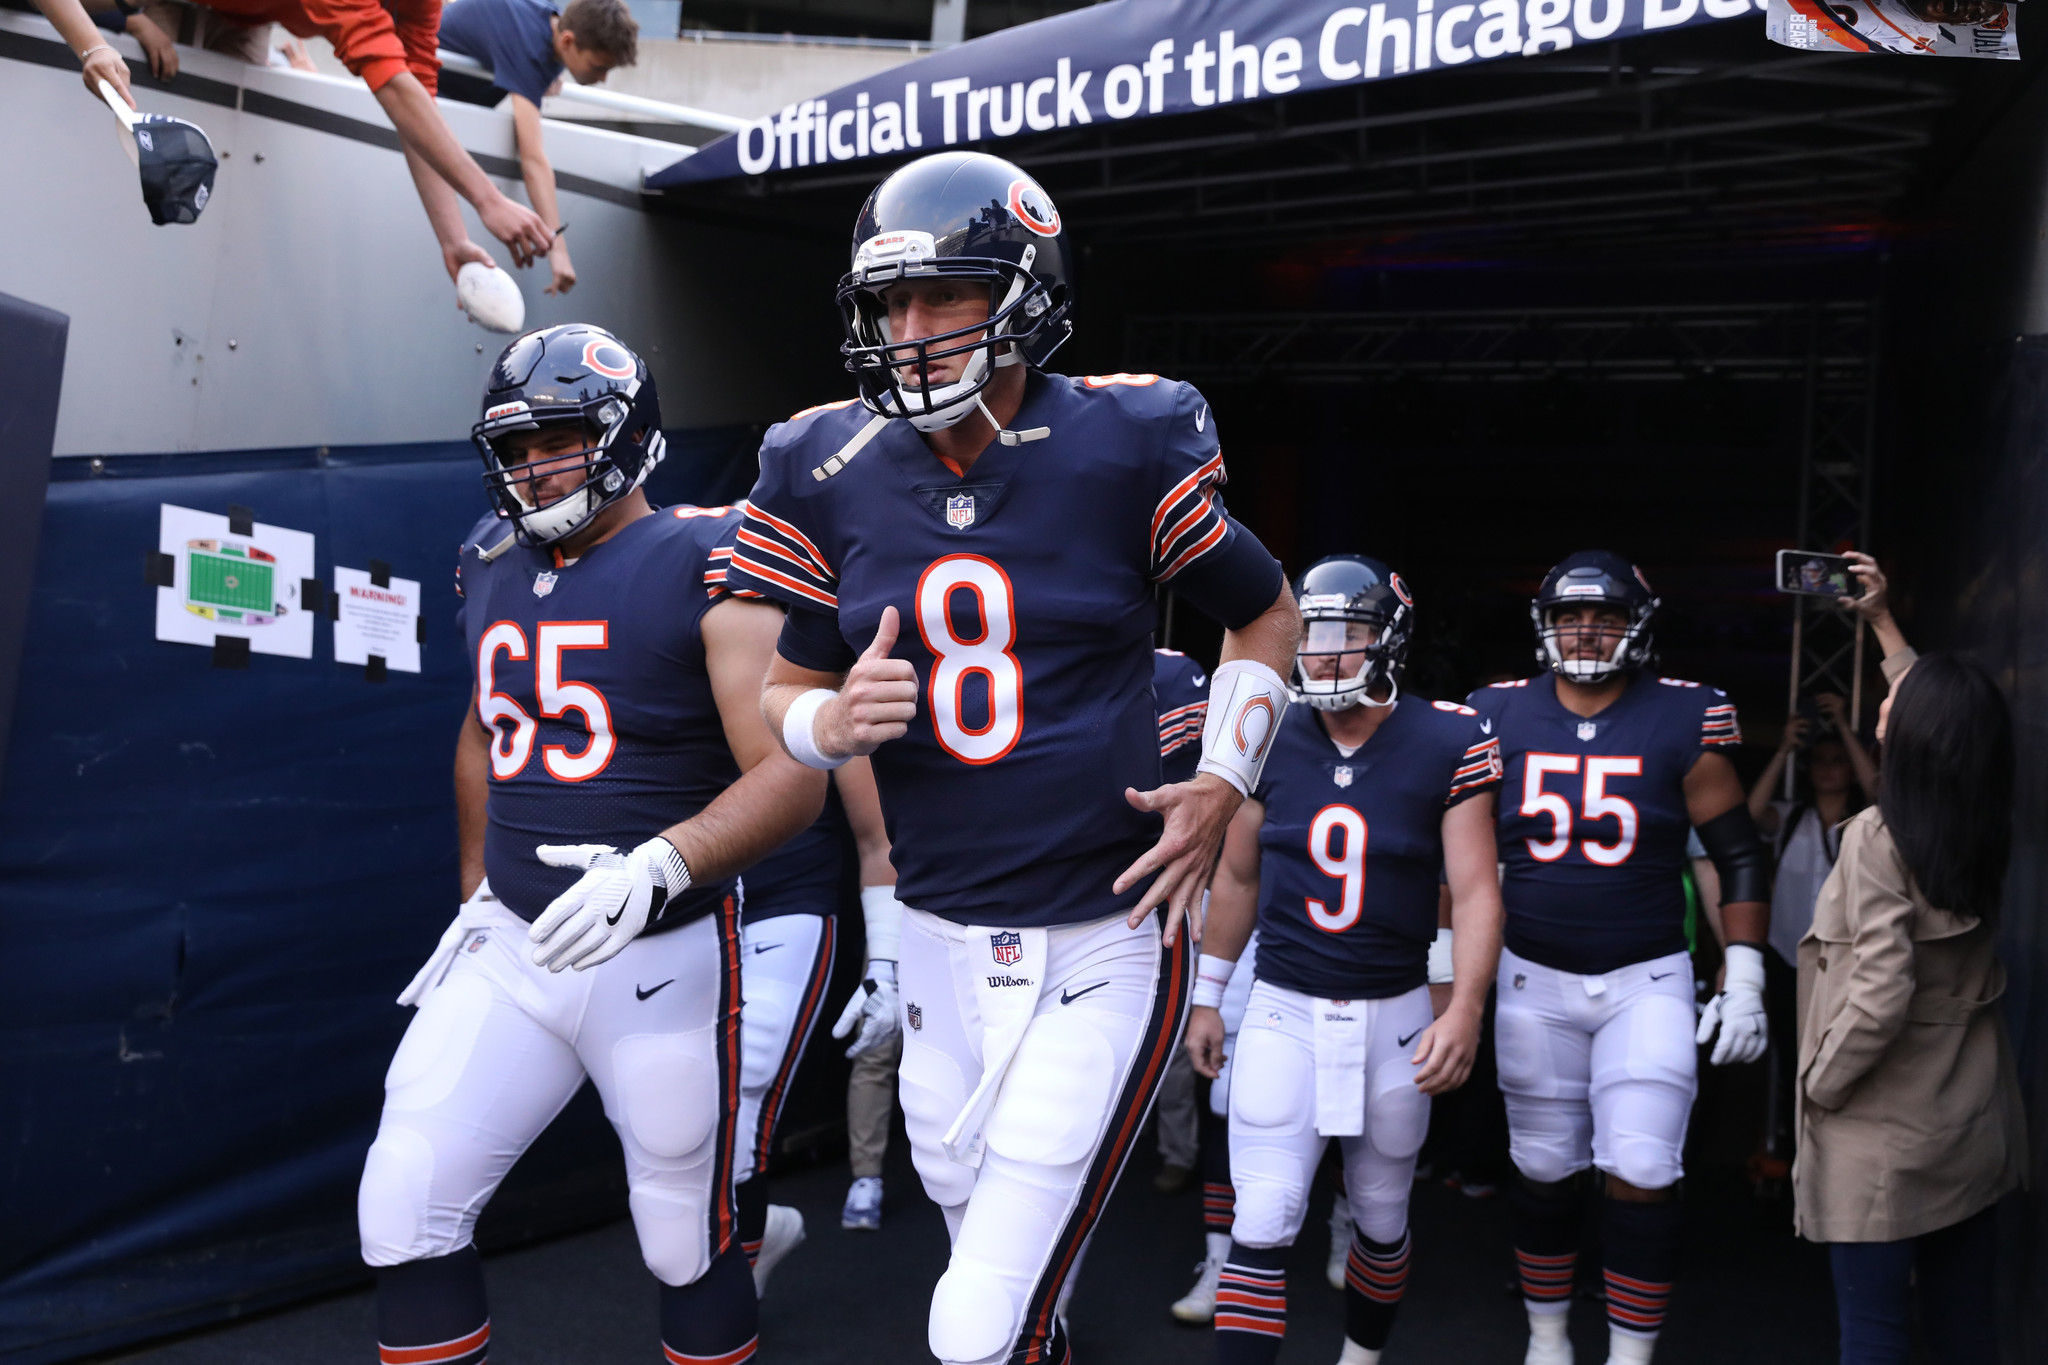 Ct-bears-falcons-gameday-spt-0910-20170909